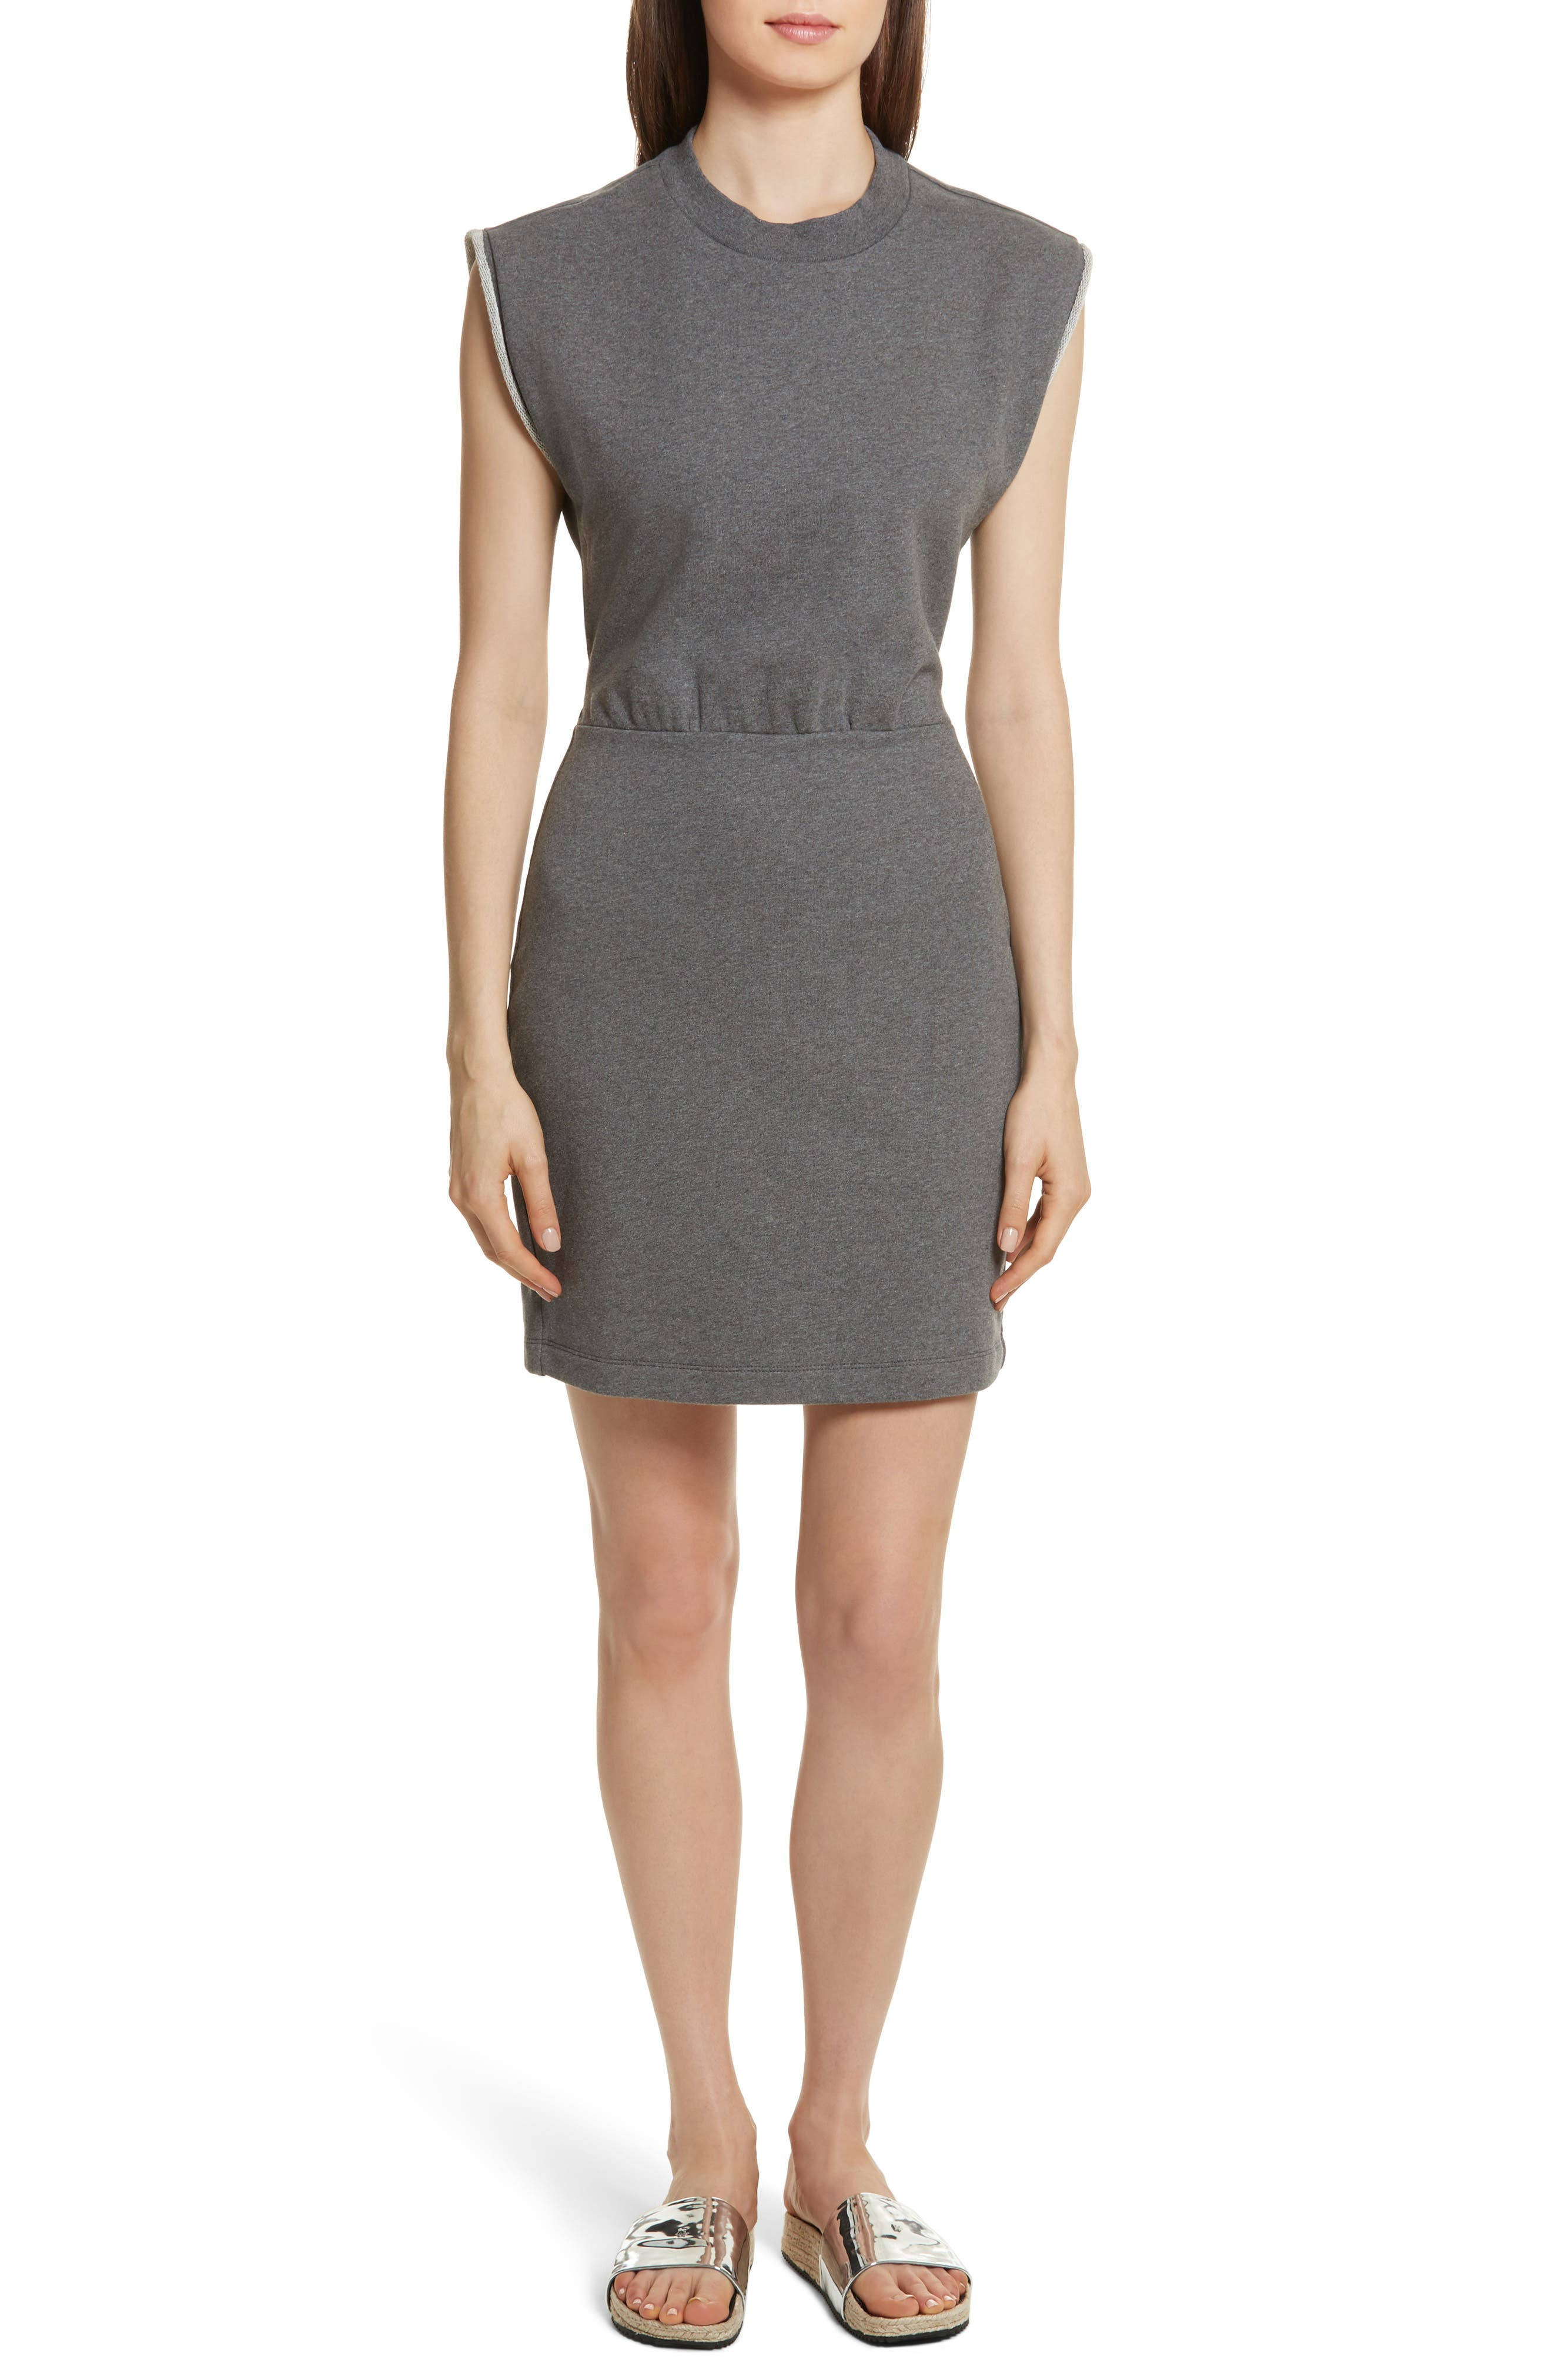 T by Alexander Wang French Terry Dress,                             Main thumbnail 1, color,                             020